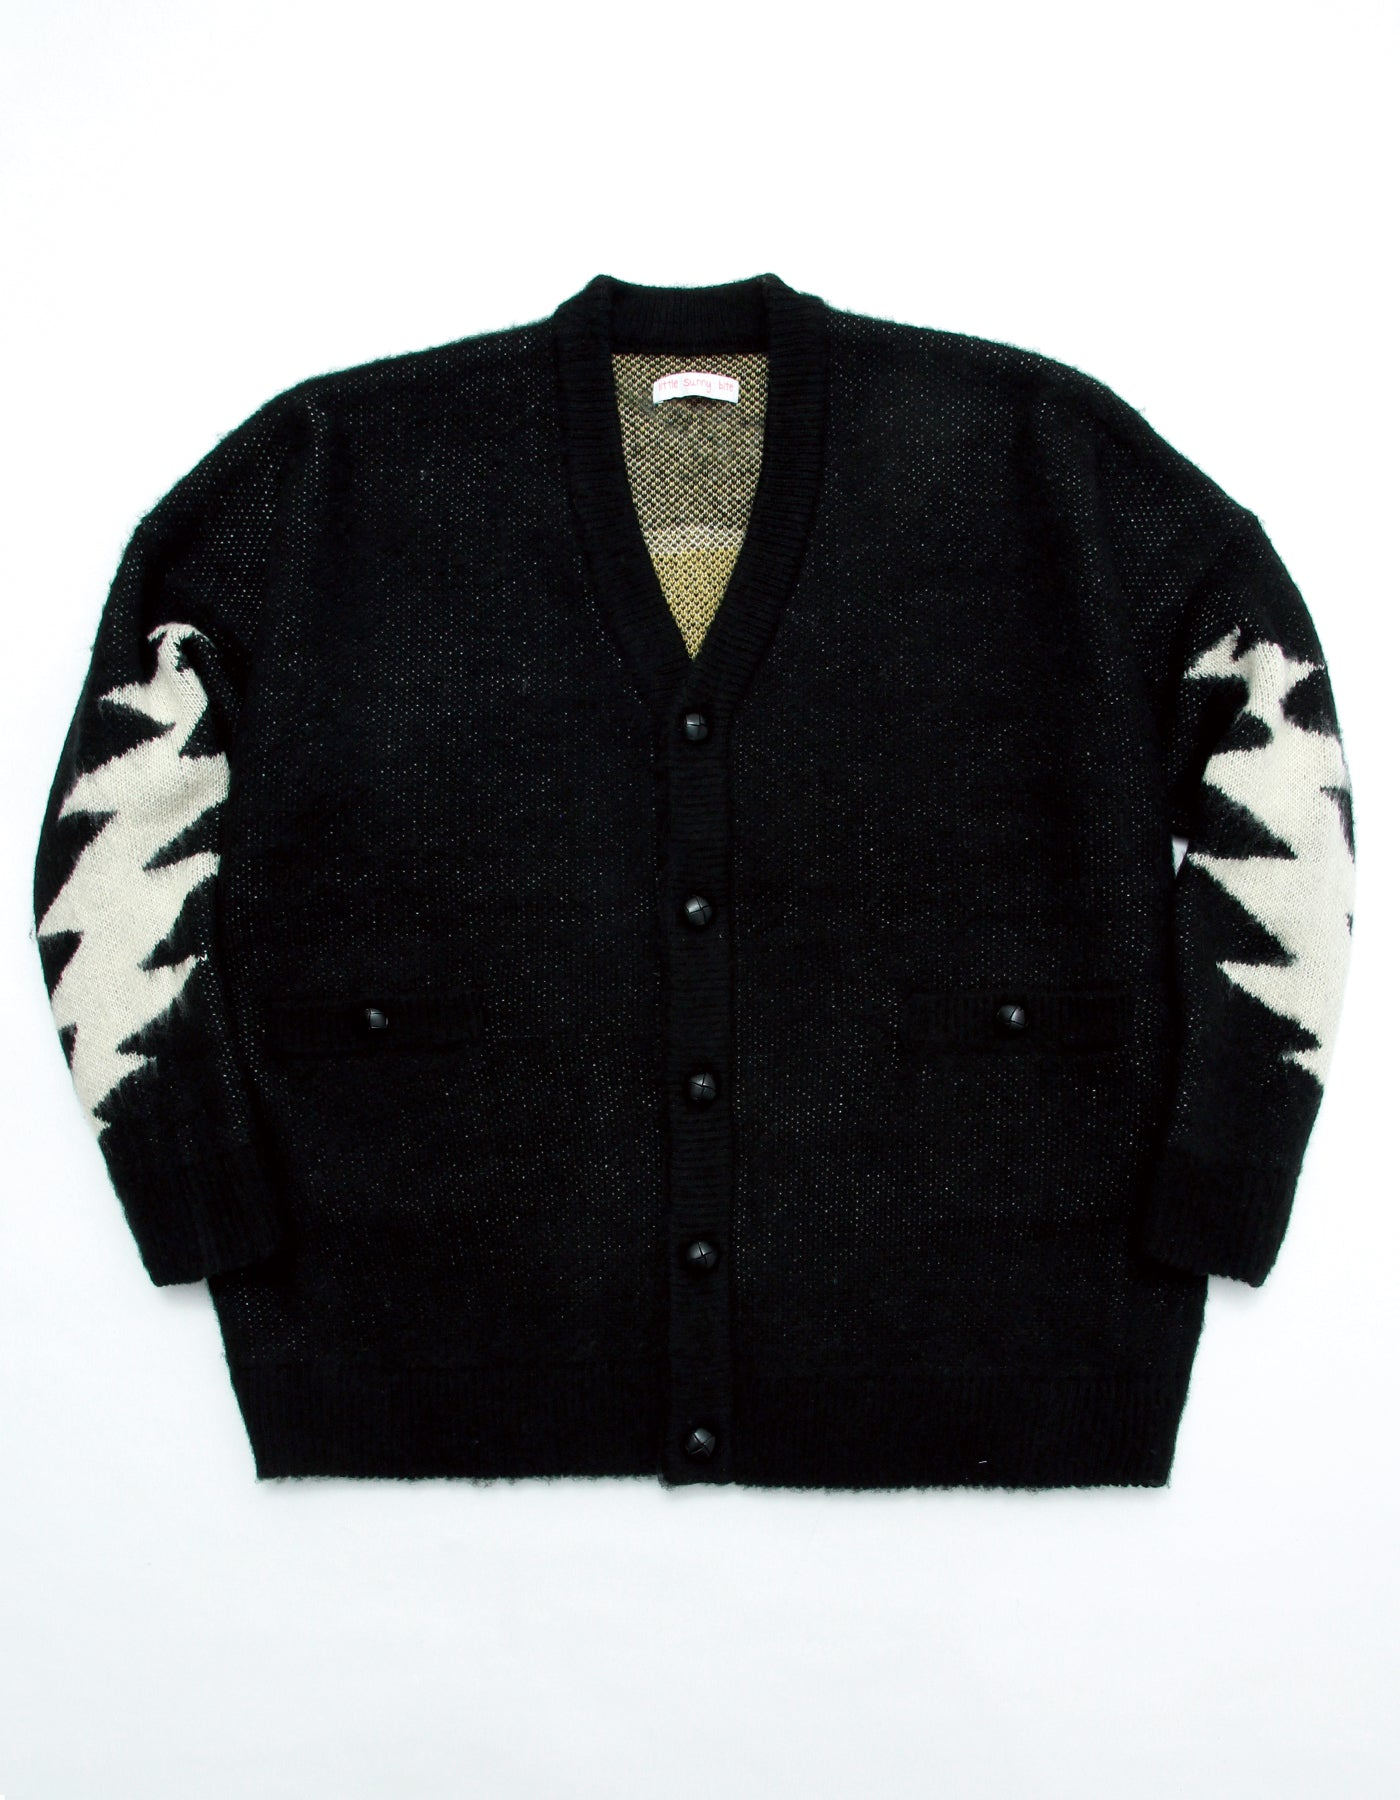 Grateful Dead x little sunny bite Knit cardigan / BLACK